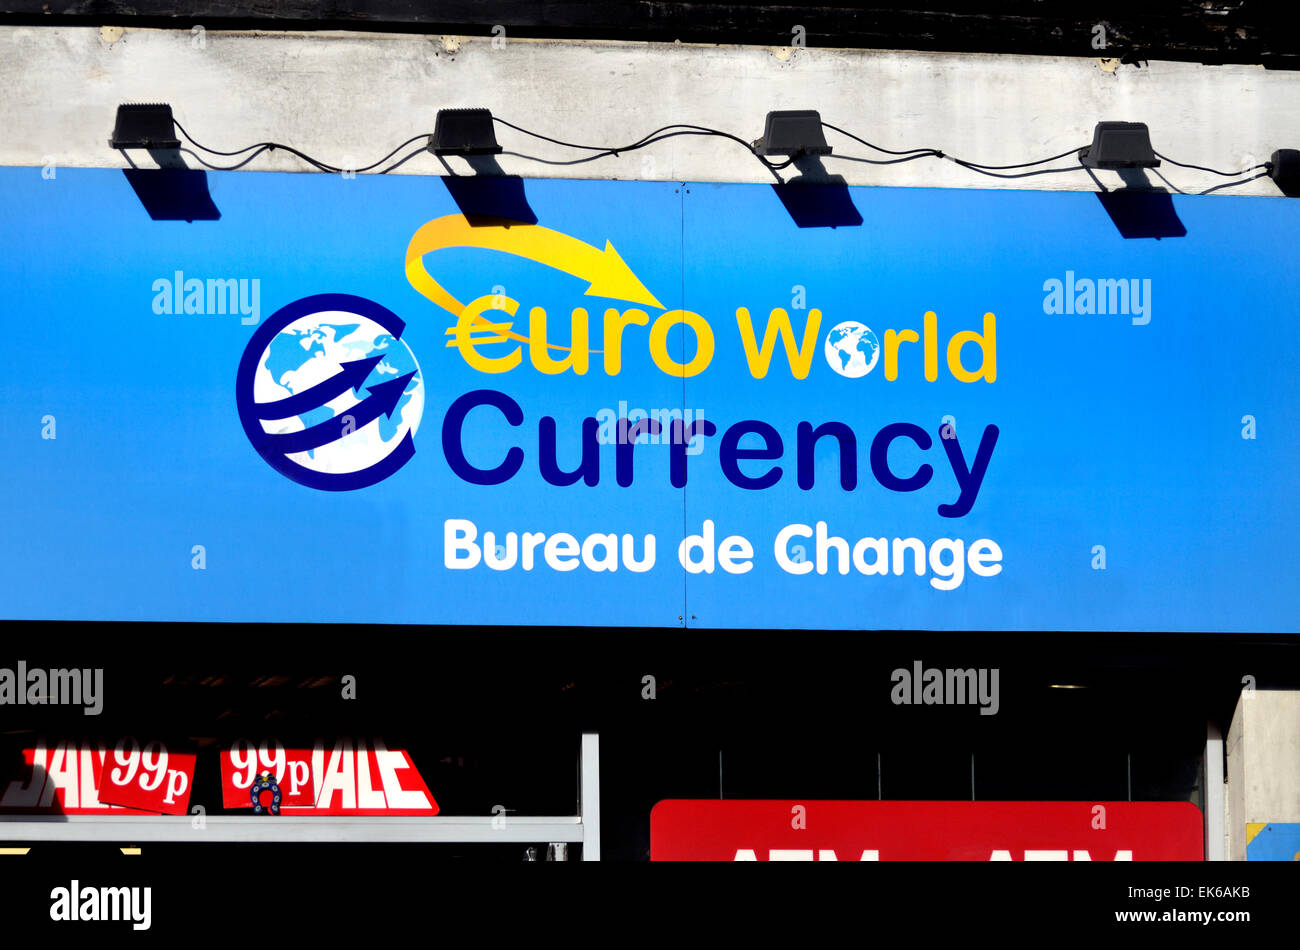 London, England, UK. Euroworld Currency Bureau de Change - Stock Image